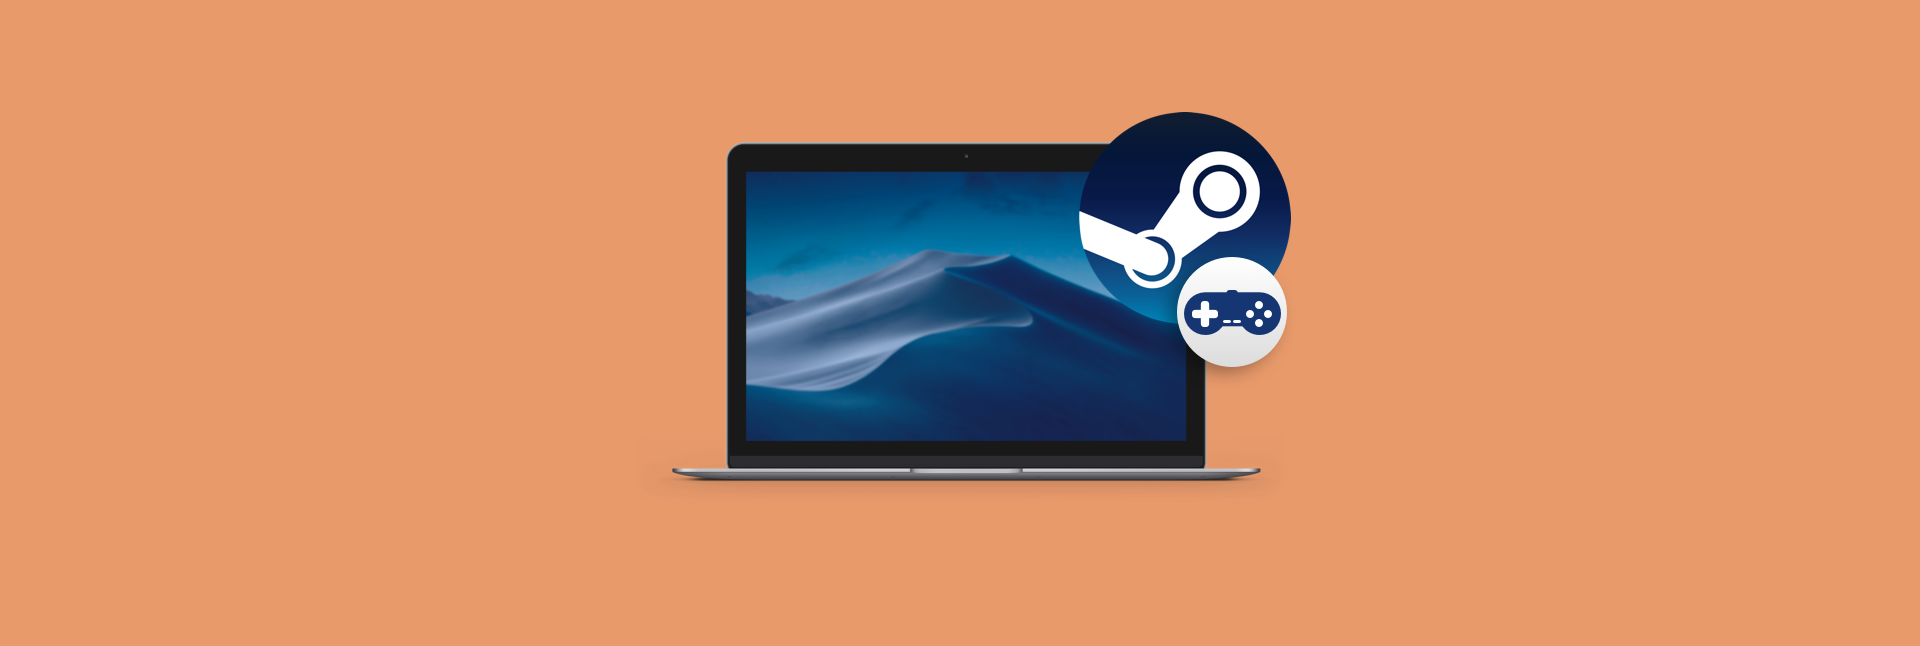 How To Install Games And Download Steam For Mac – Setapp